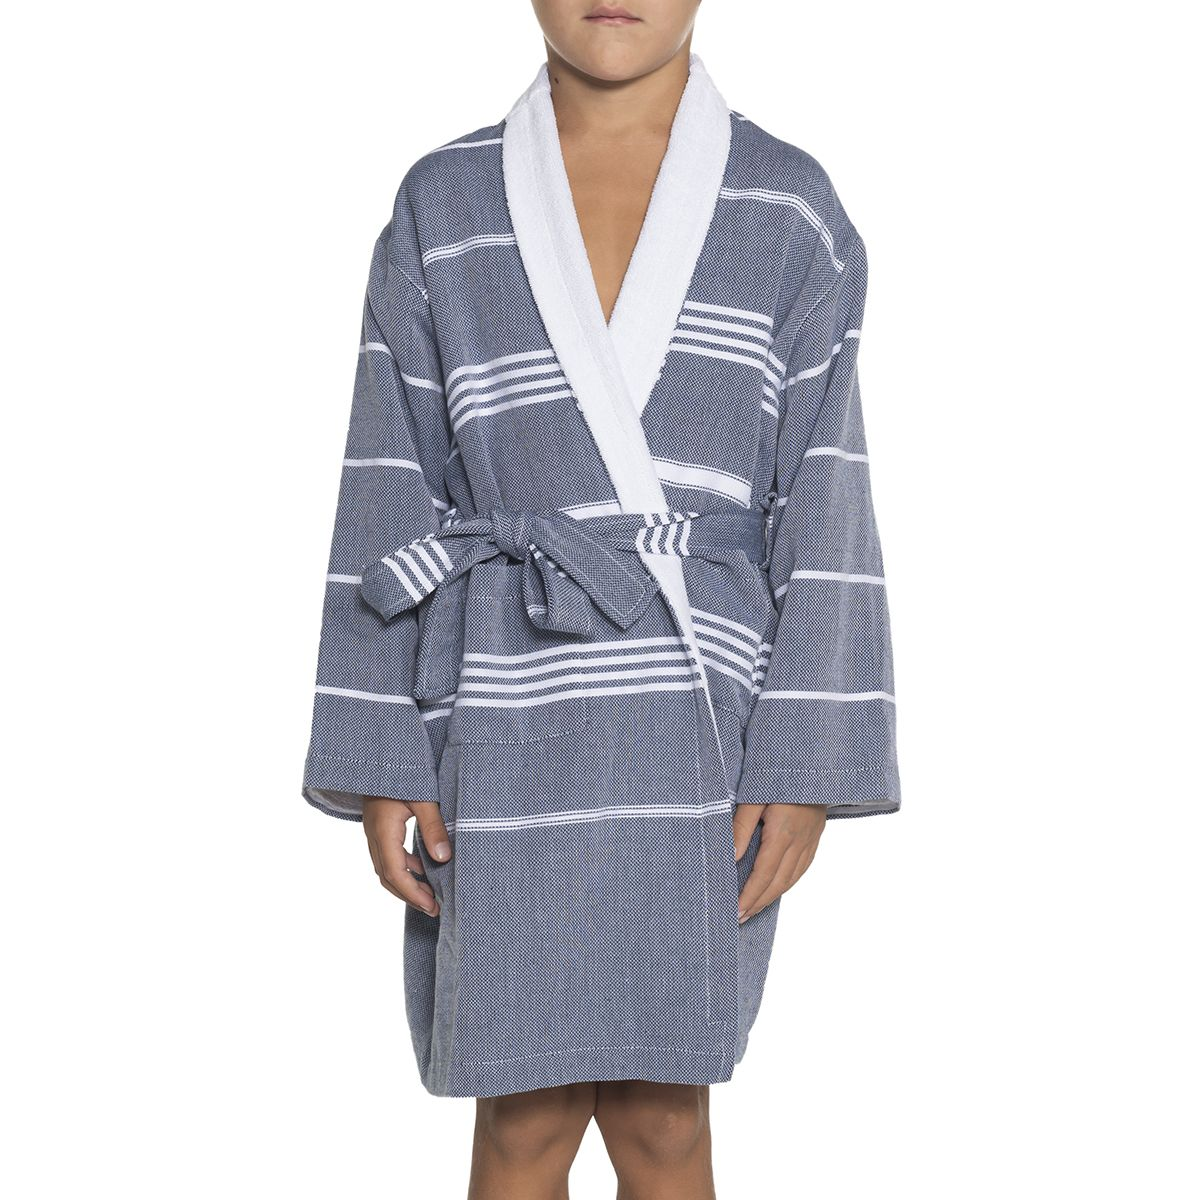 Bathrobe Leyla Kiddo Terry - Navy